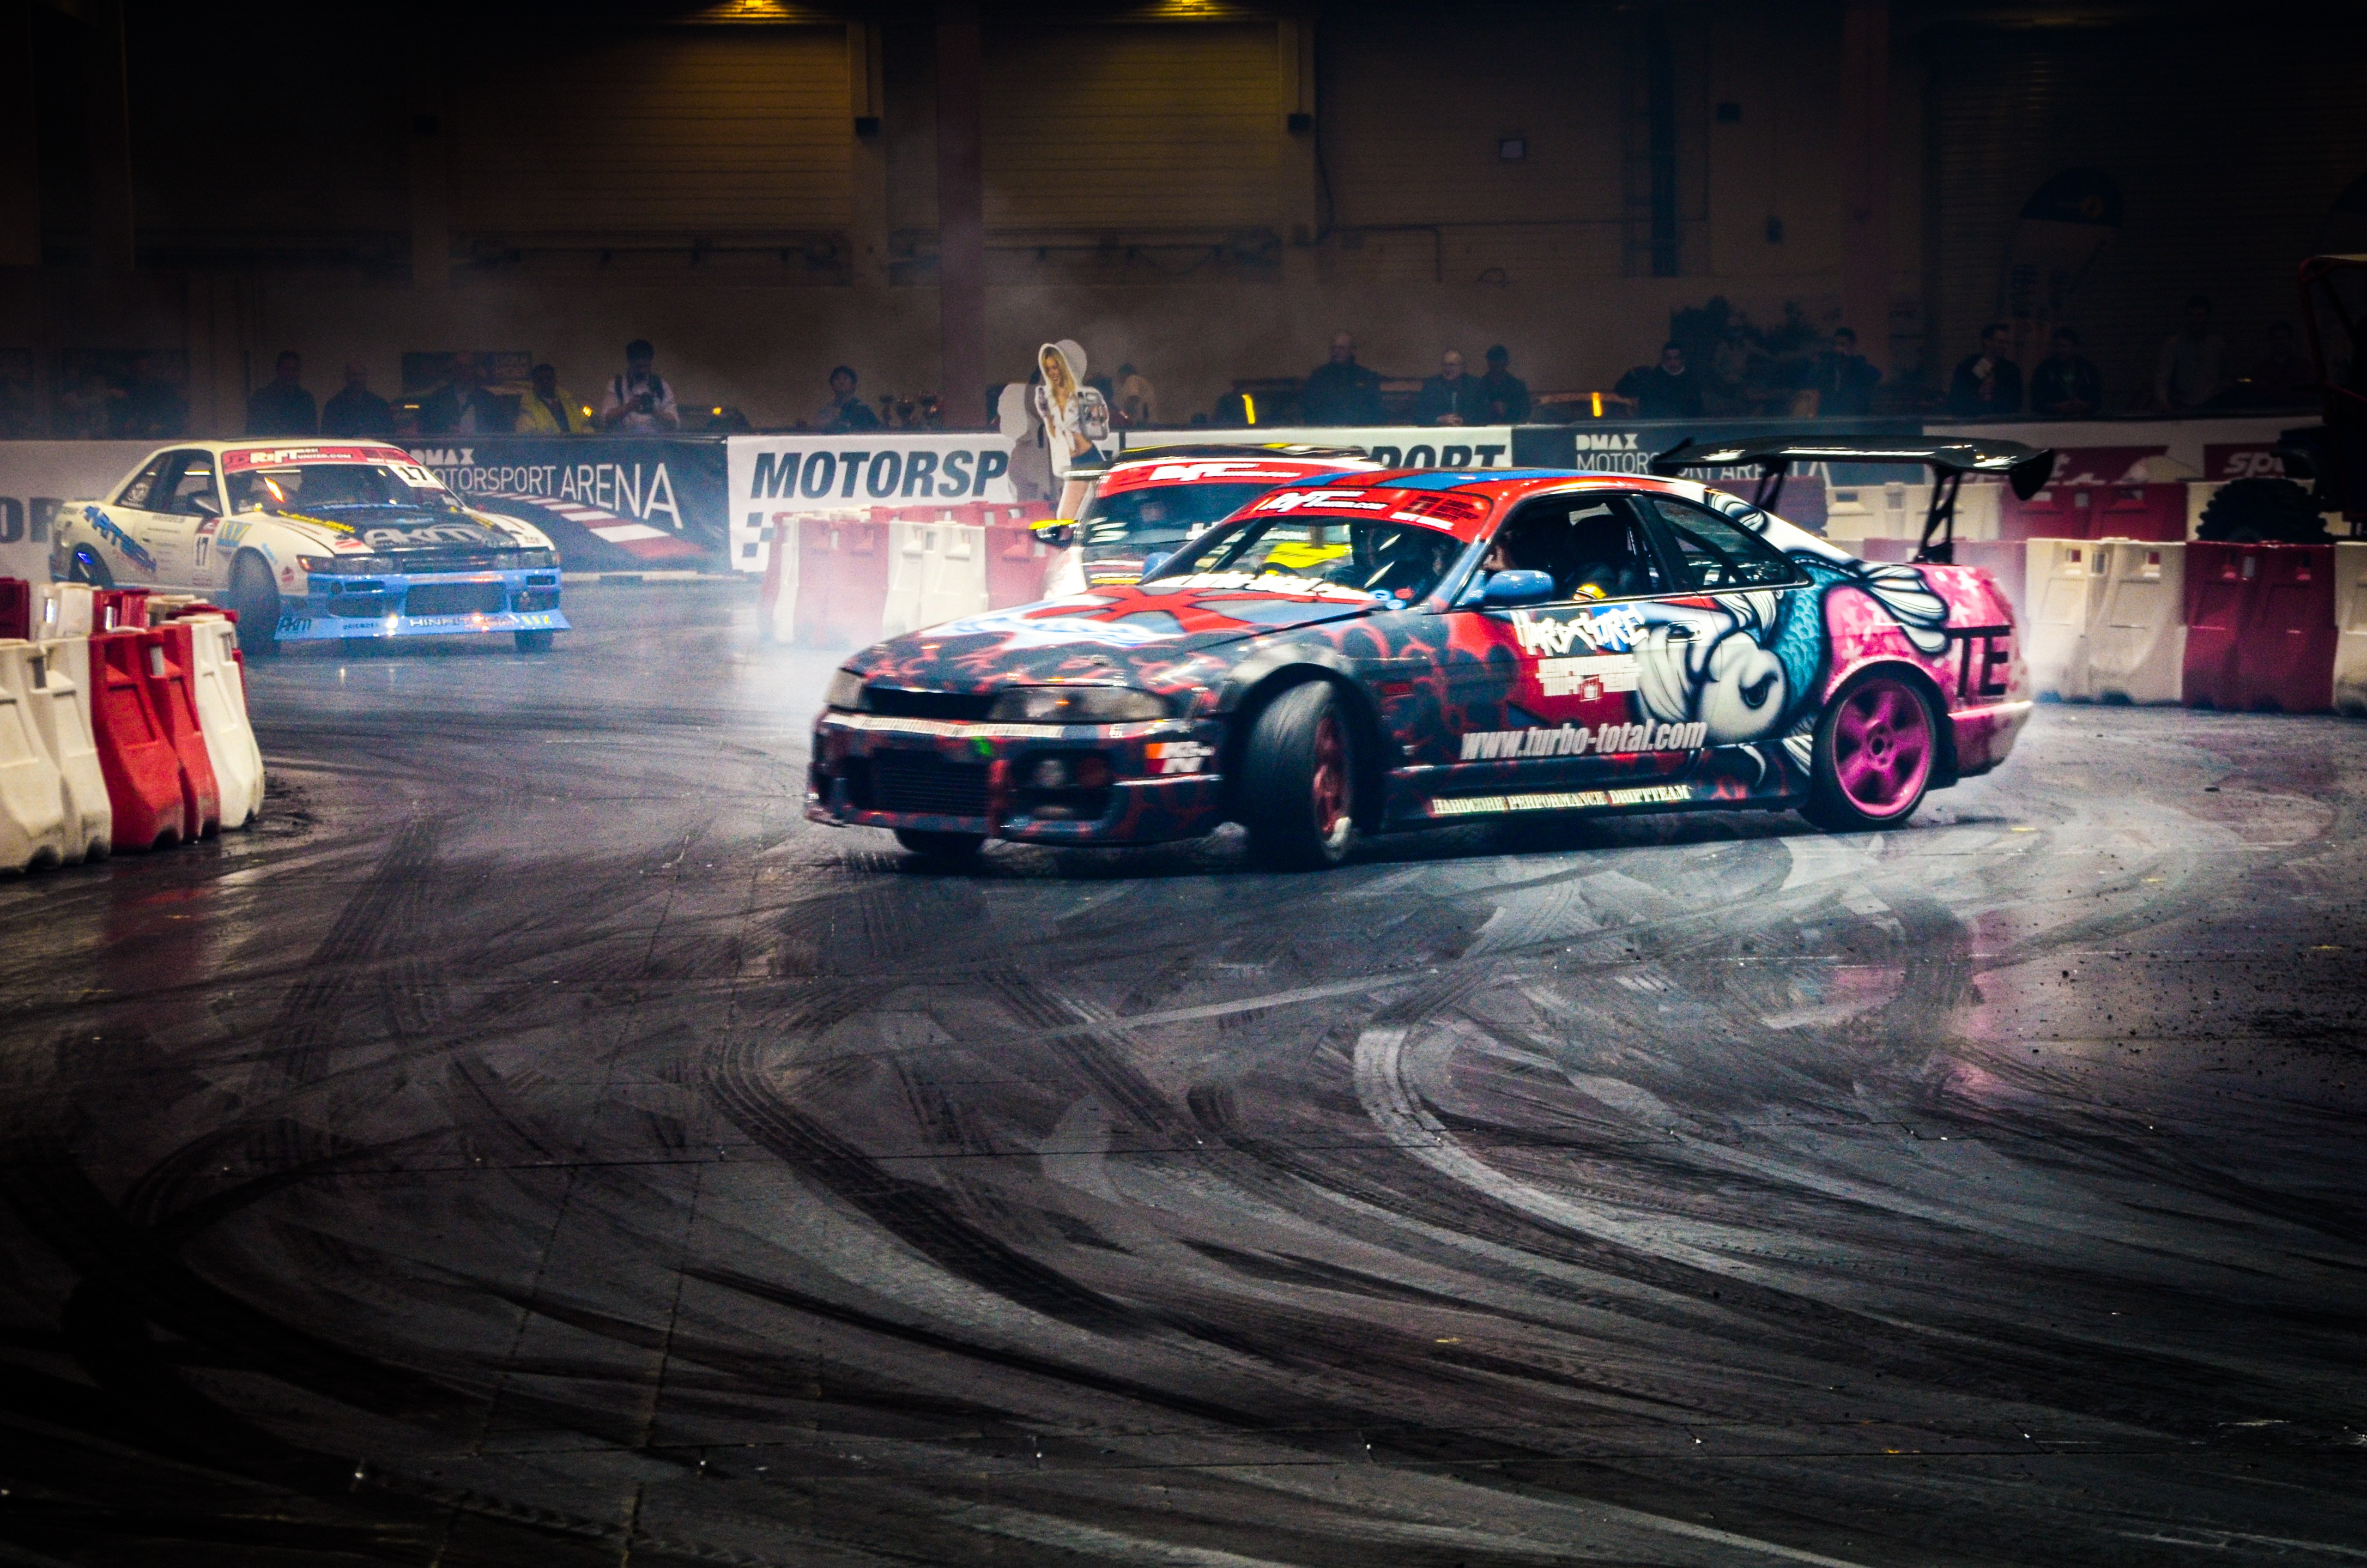 Race cars hd cars 4k wallpapers images backgrounds - Racing cars wallpapers for mobile ...